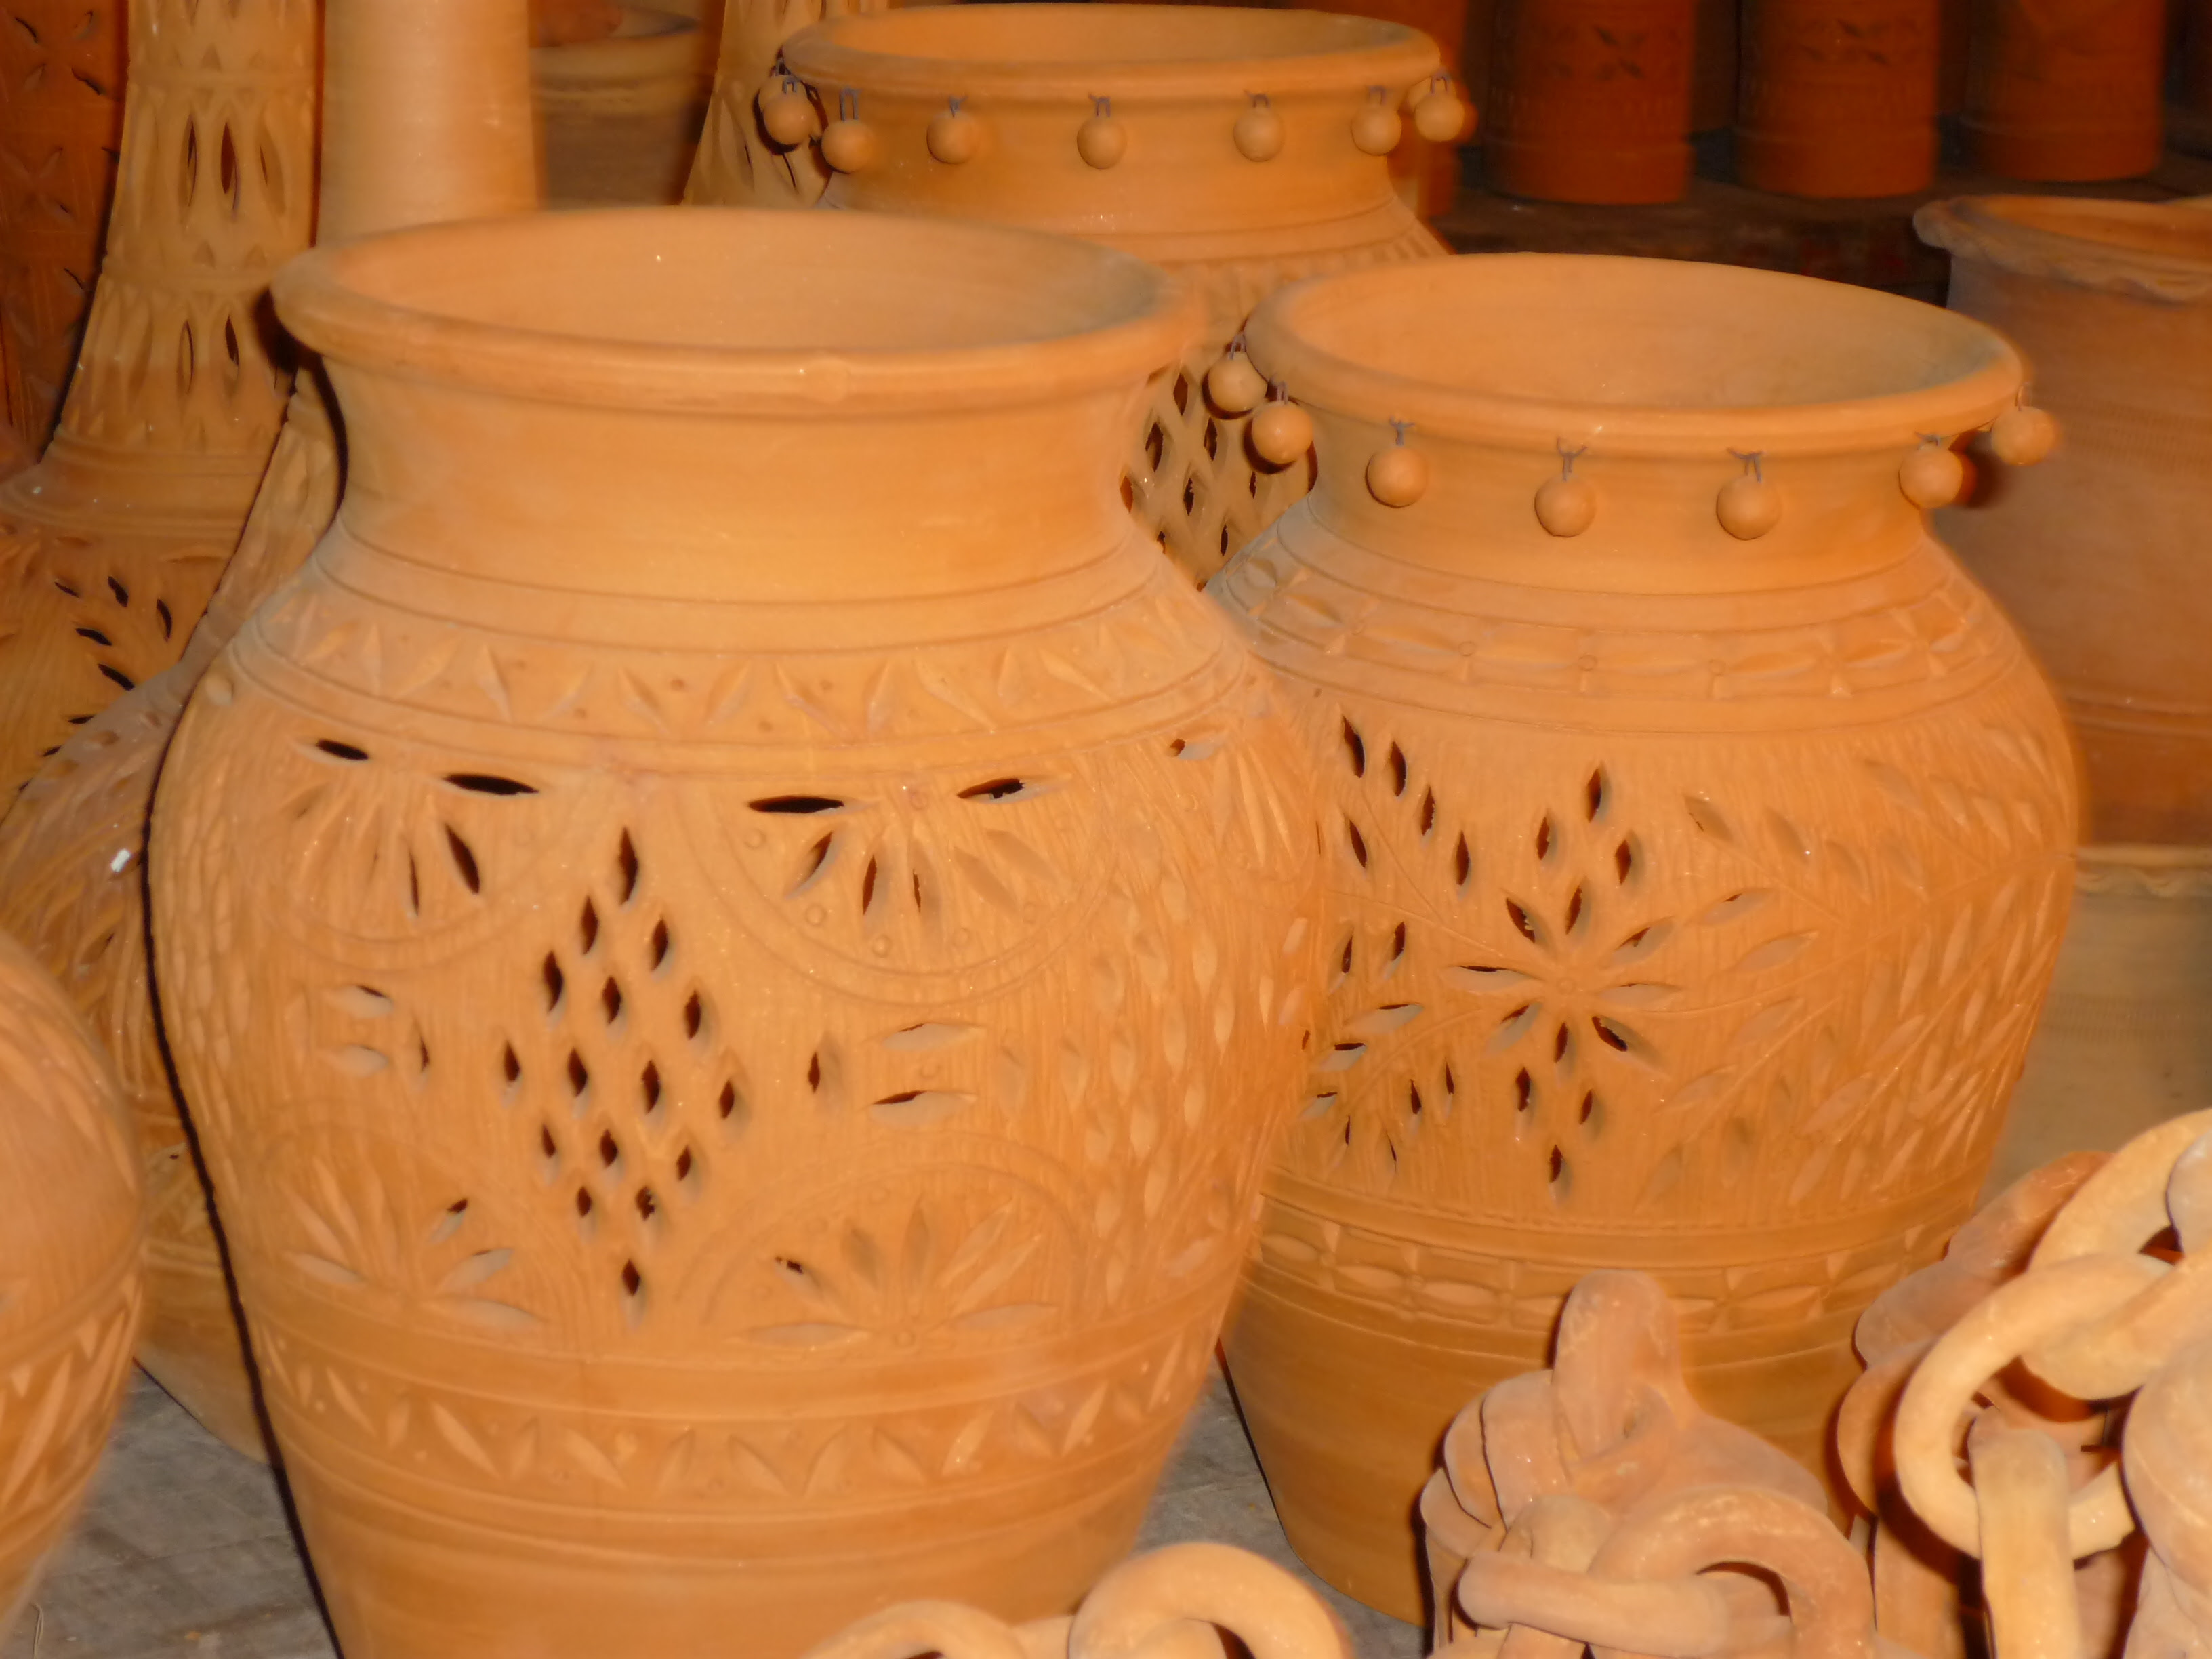 Pottery - Wikipedia, the free encyclopedia